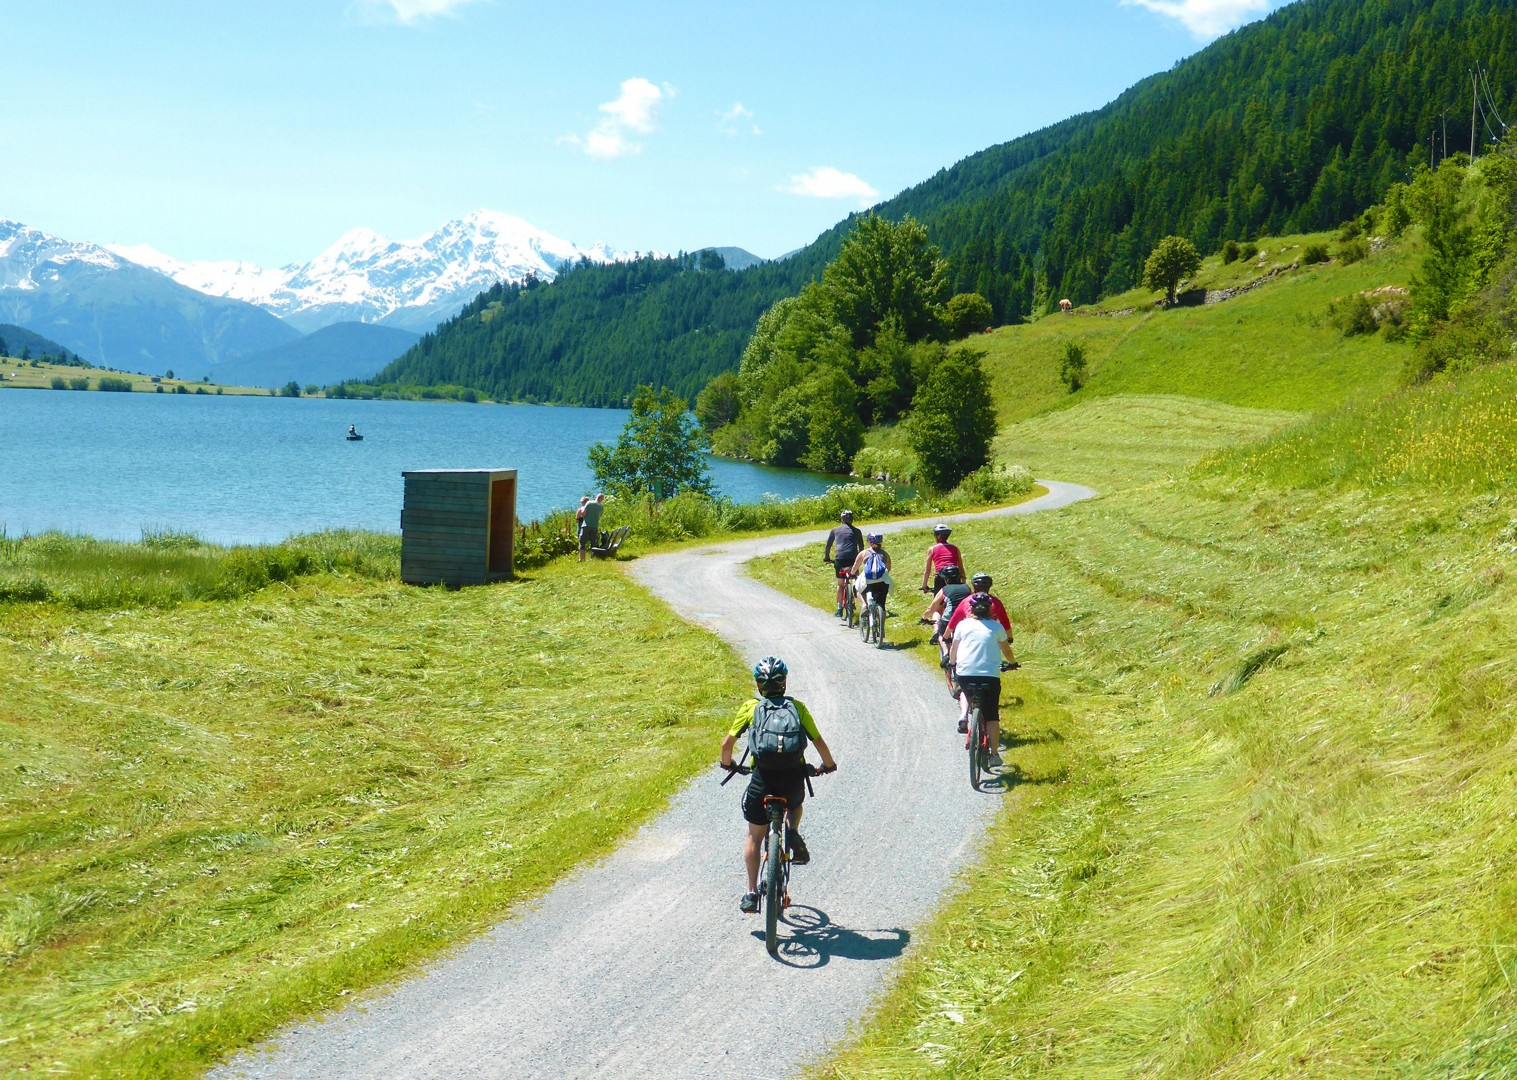 trumer-lakes-family-cycling-holiday-austria-austrian-lakes.jpg - Austria - Salzburg's Lake District - Family Cycling